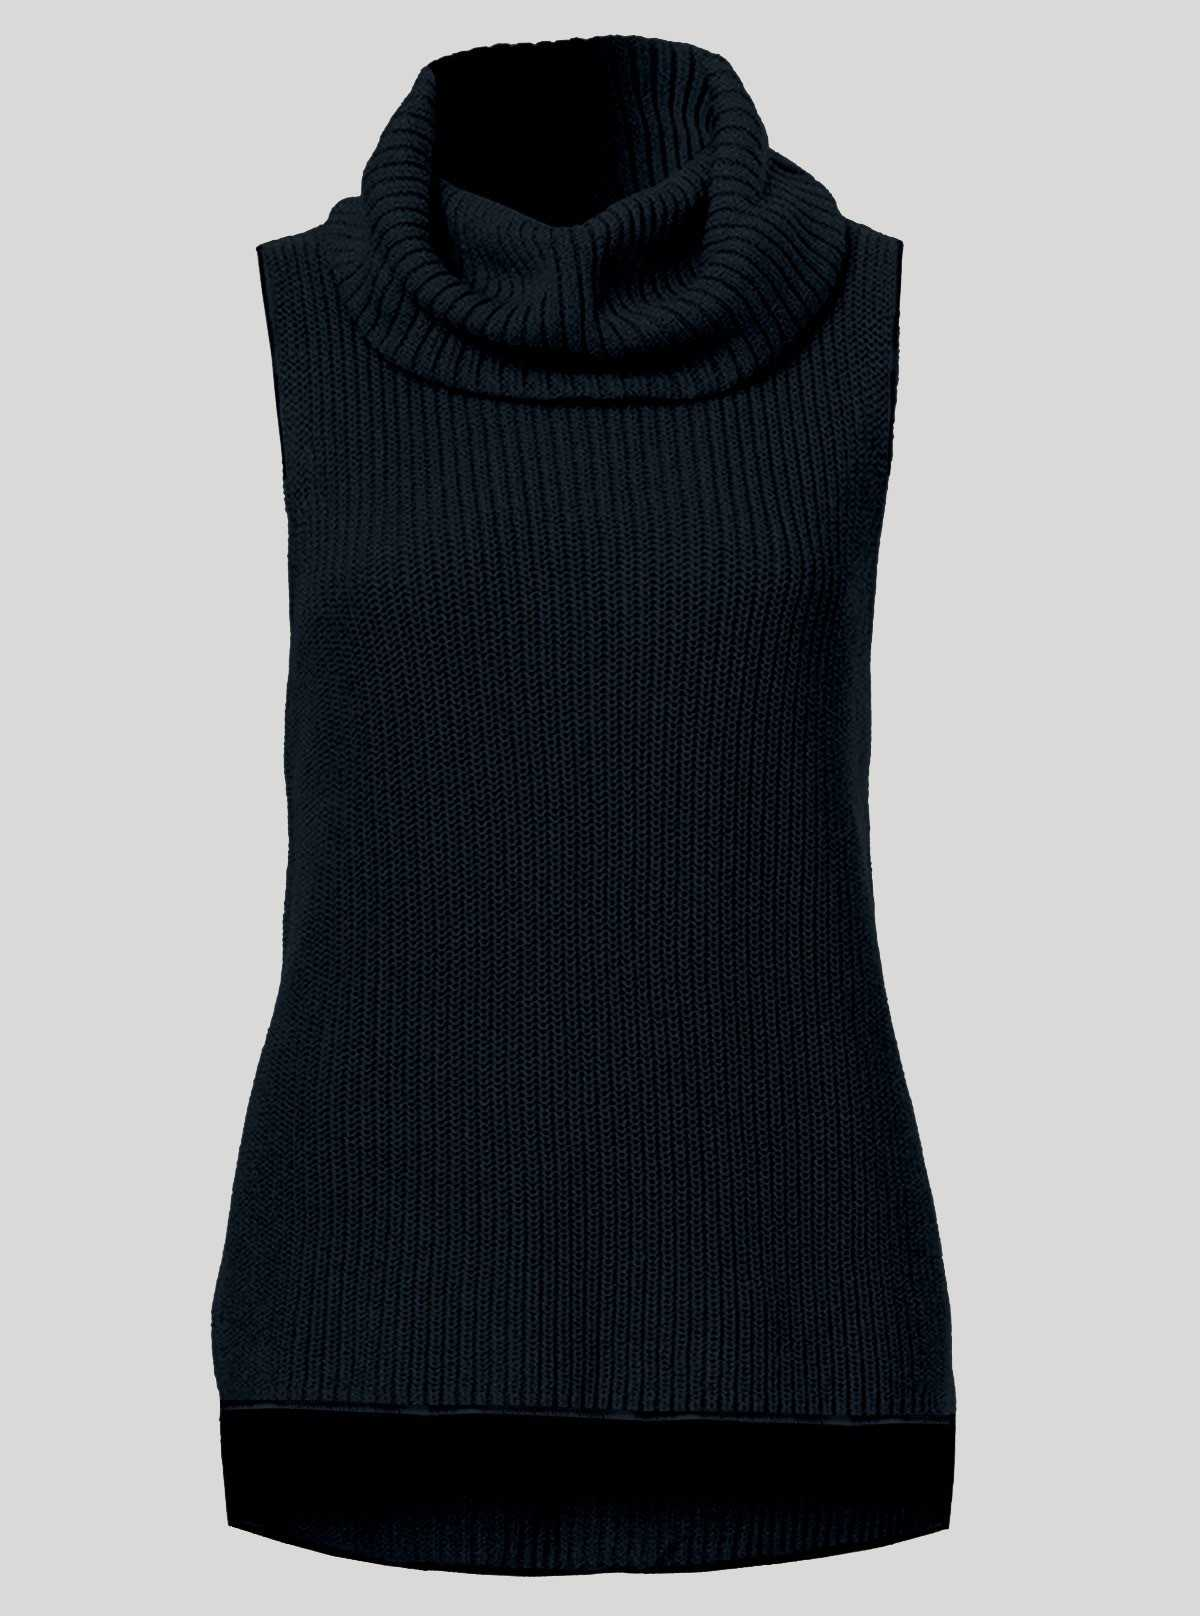 Blue Flat Knit High Neck Top Boer and Fitch - 1